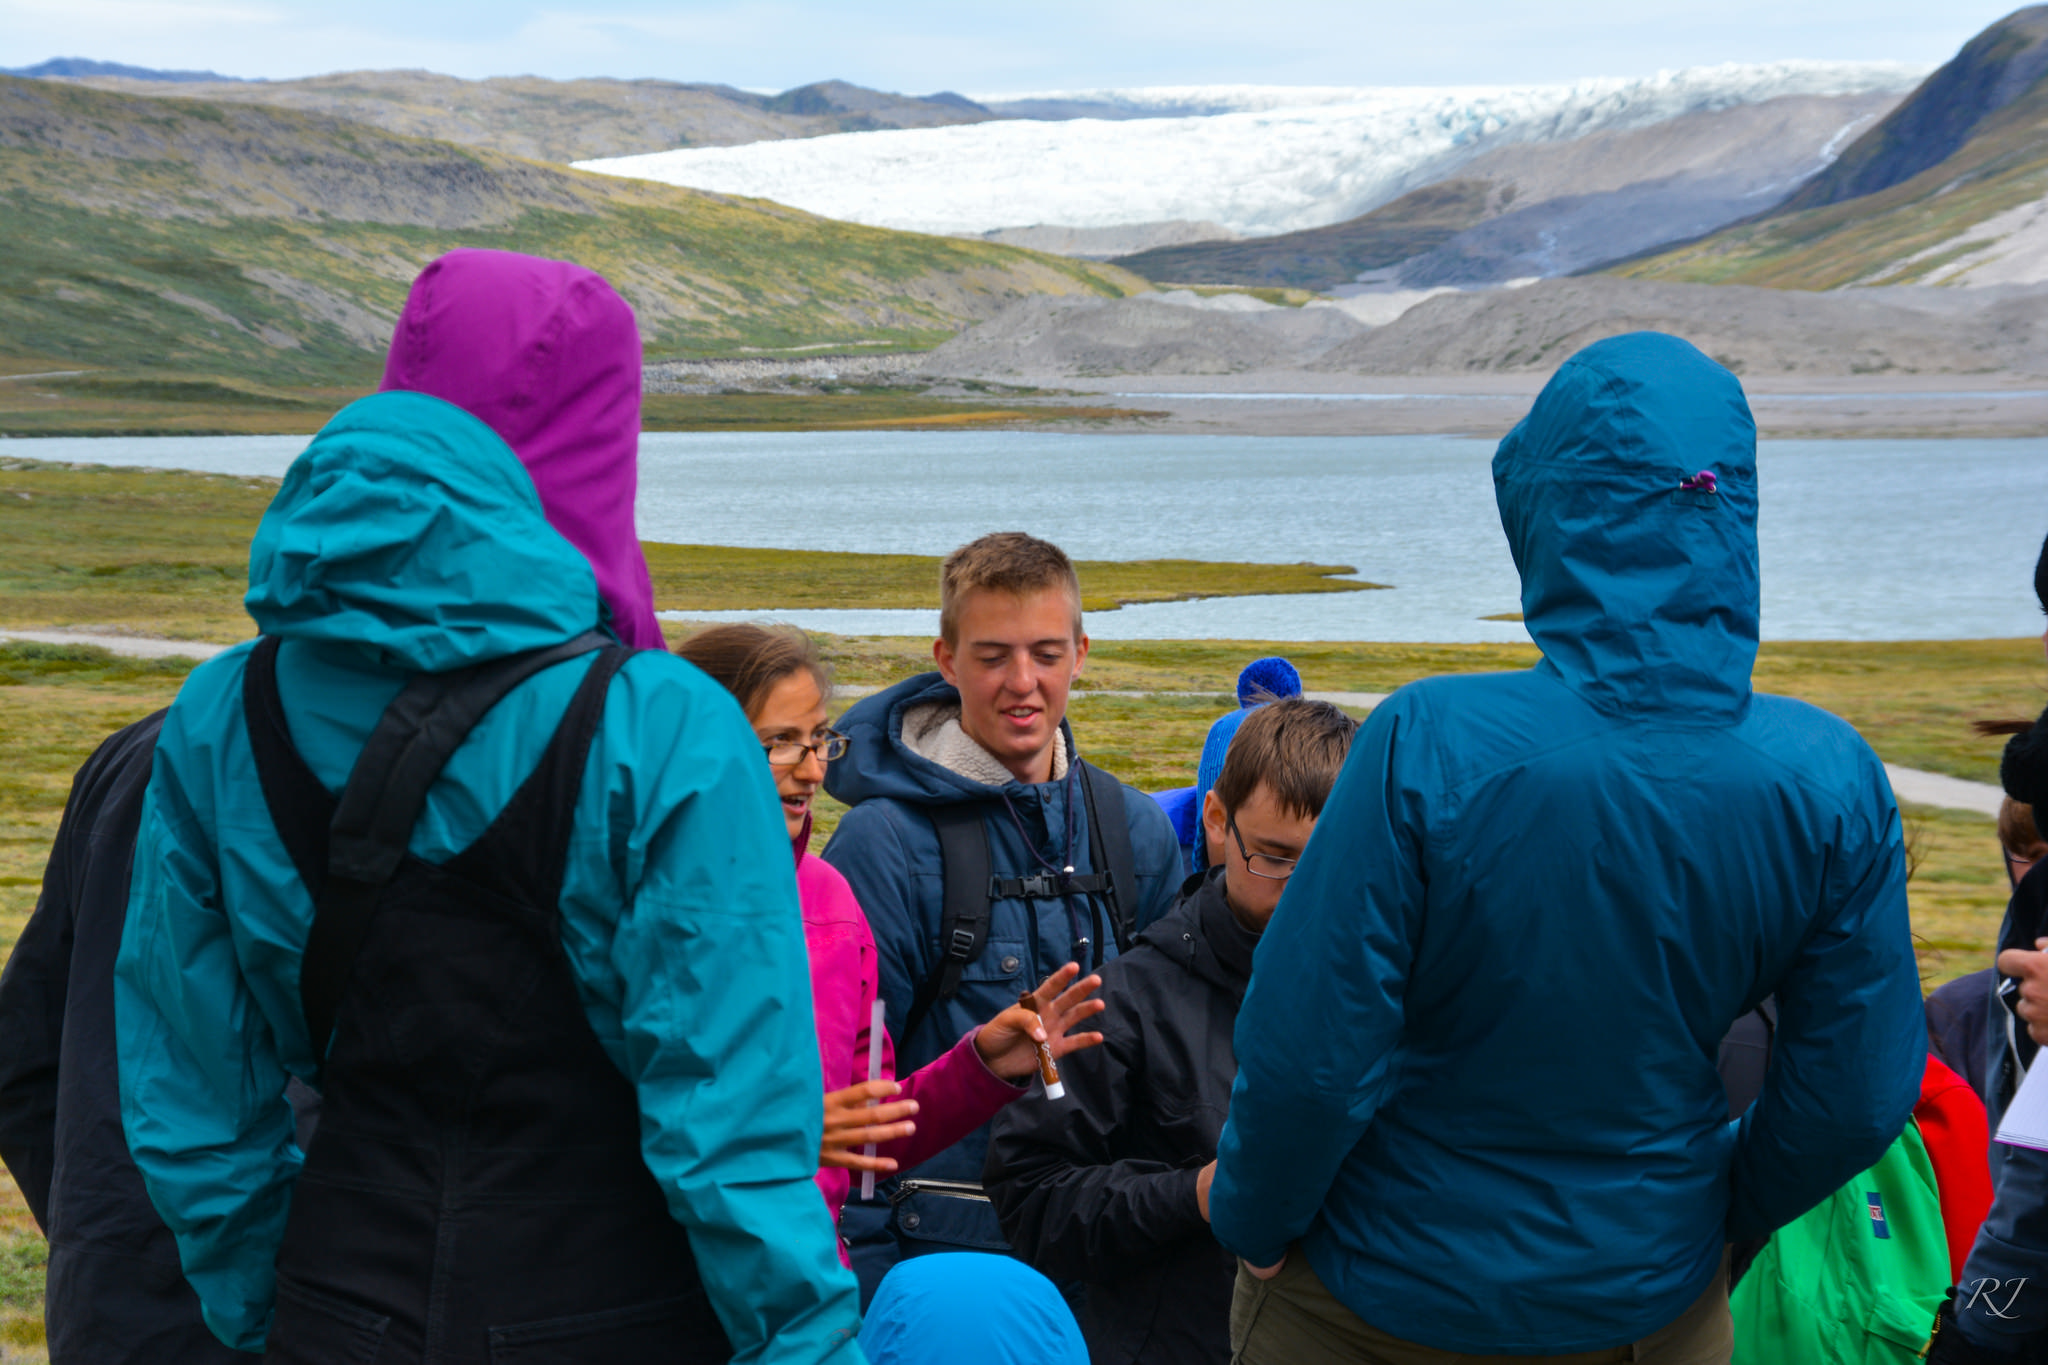 Day hike near Kangerlussuaq, Greenland. Lakes are formed by water running off of the Greenland ice sheet, seen in background. Photo: JSEP 2015